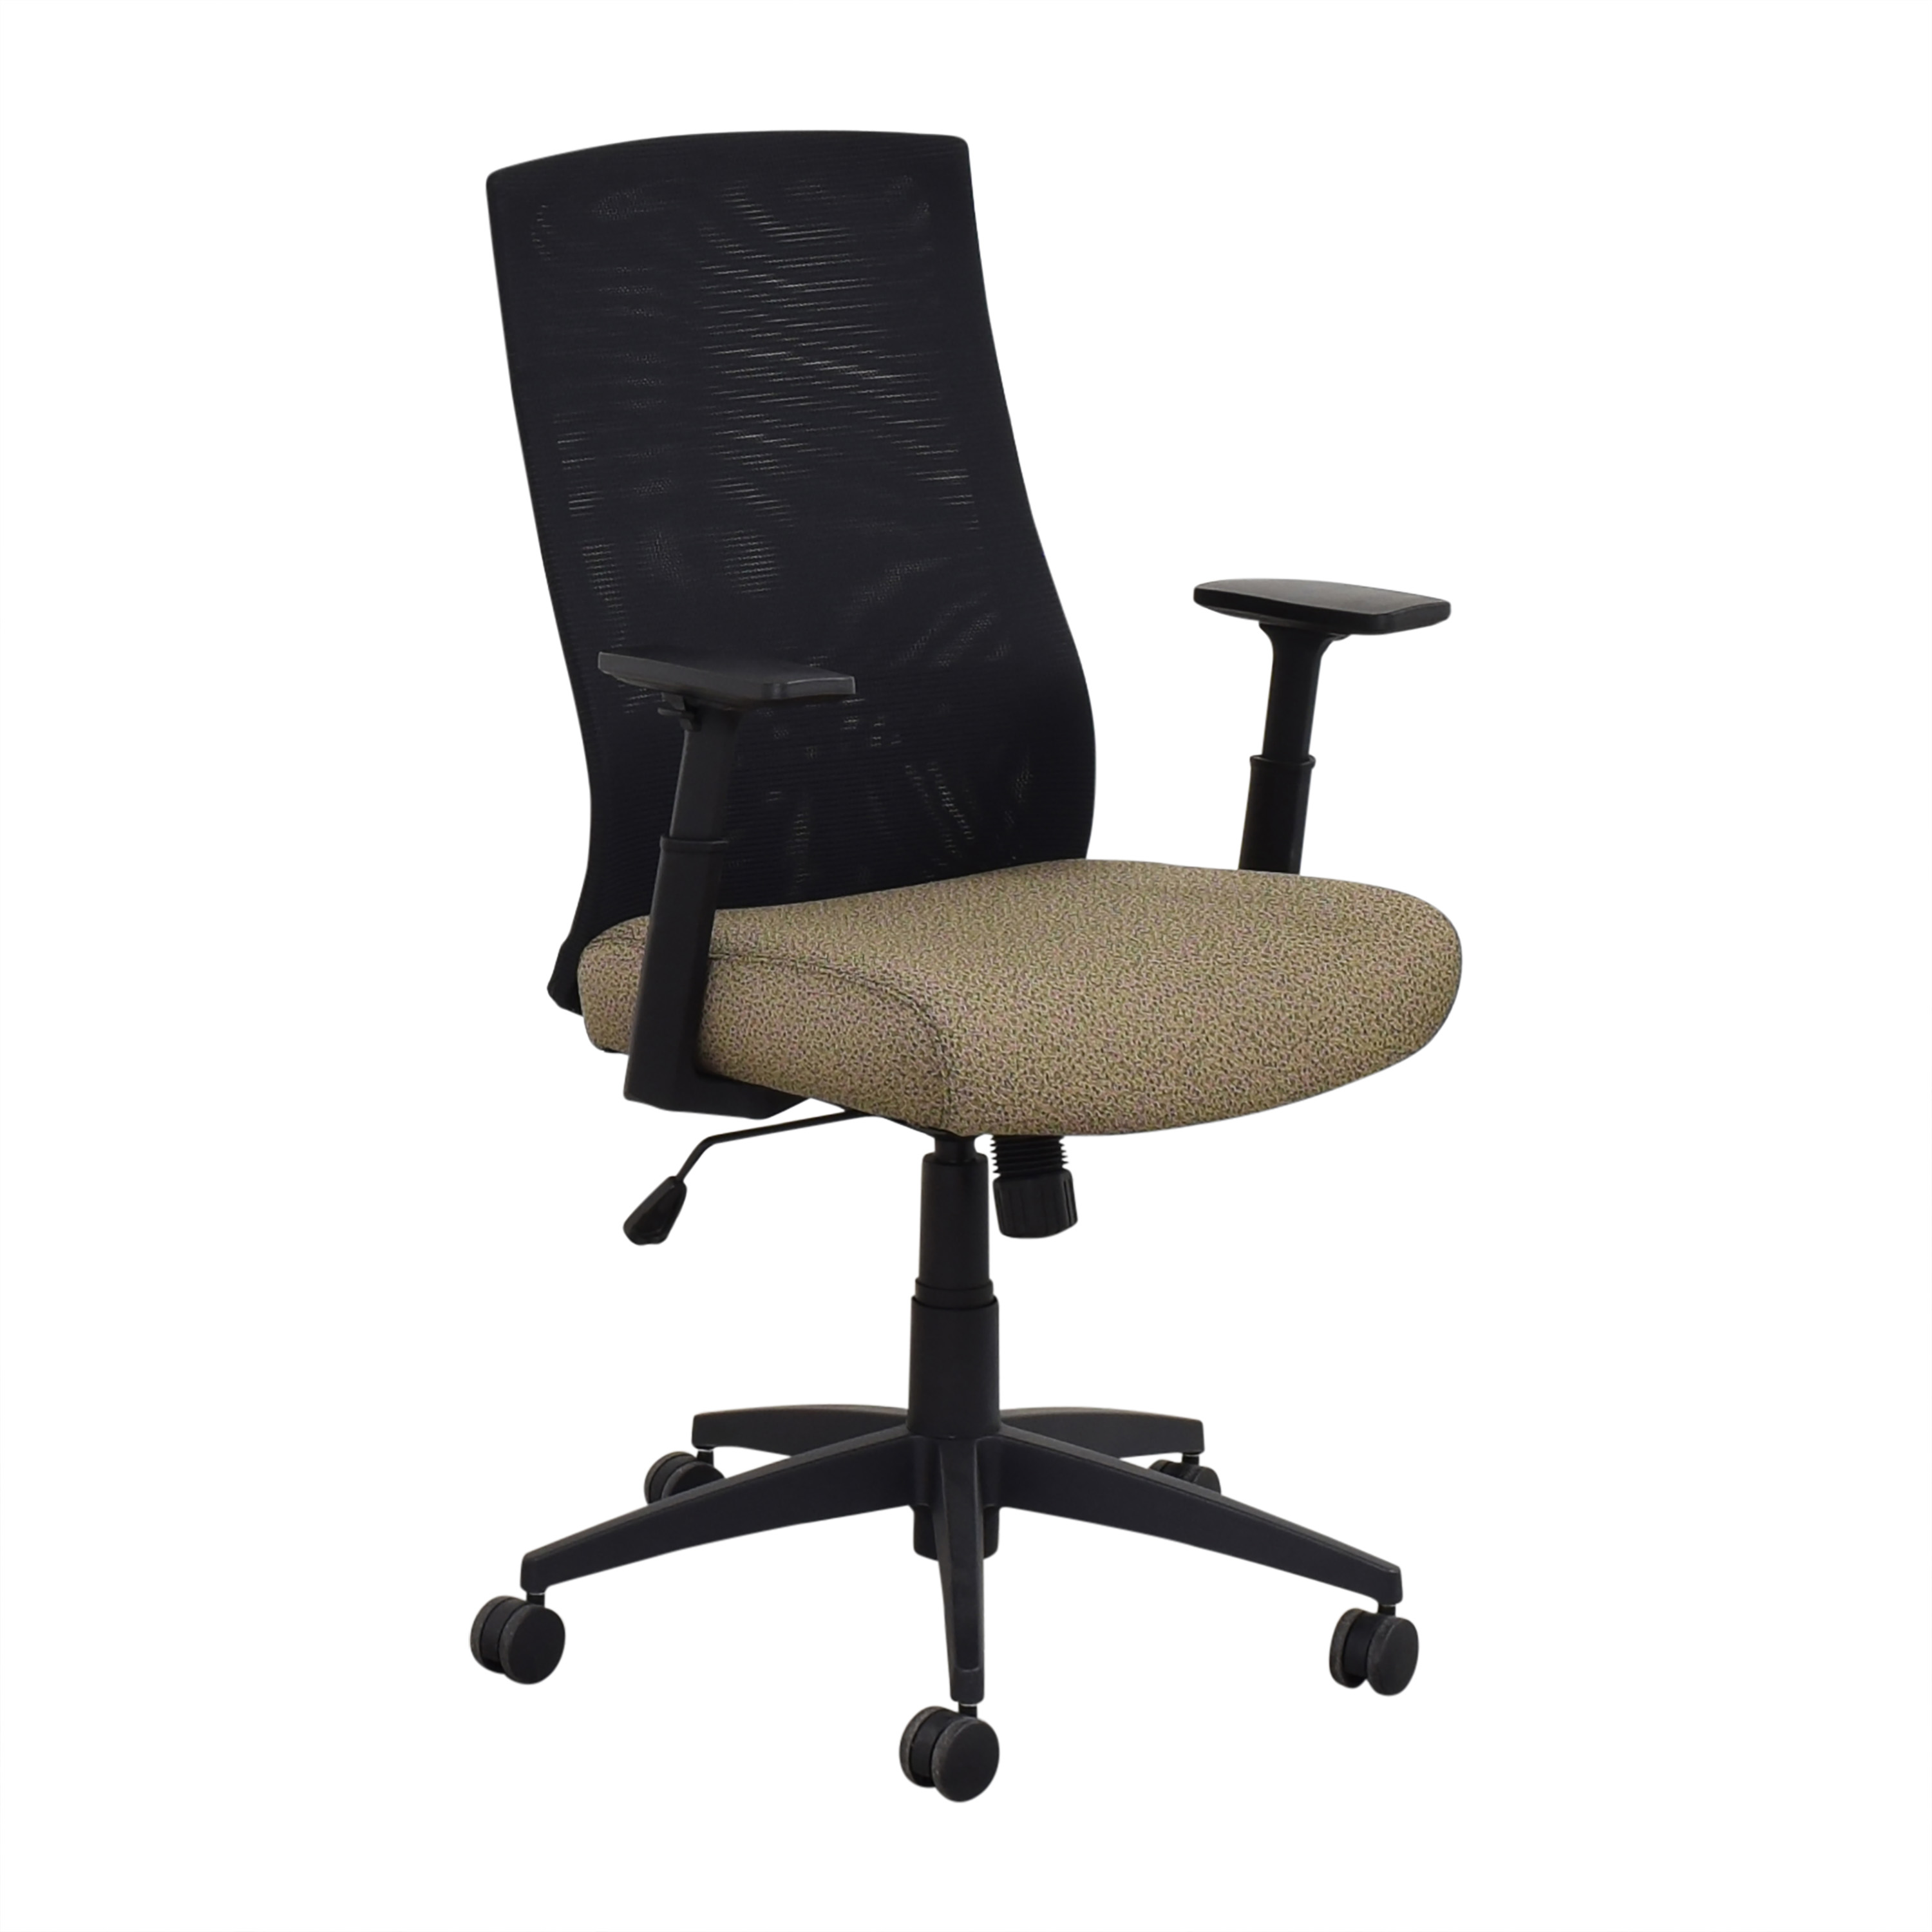 Offices to Go Mesh Back Synchro-Tilter Chair sale